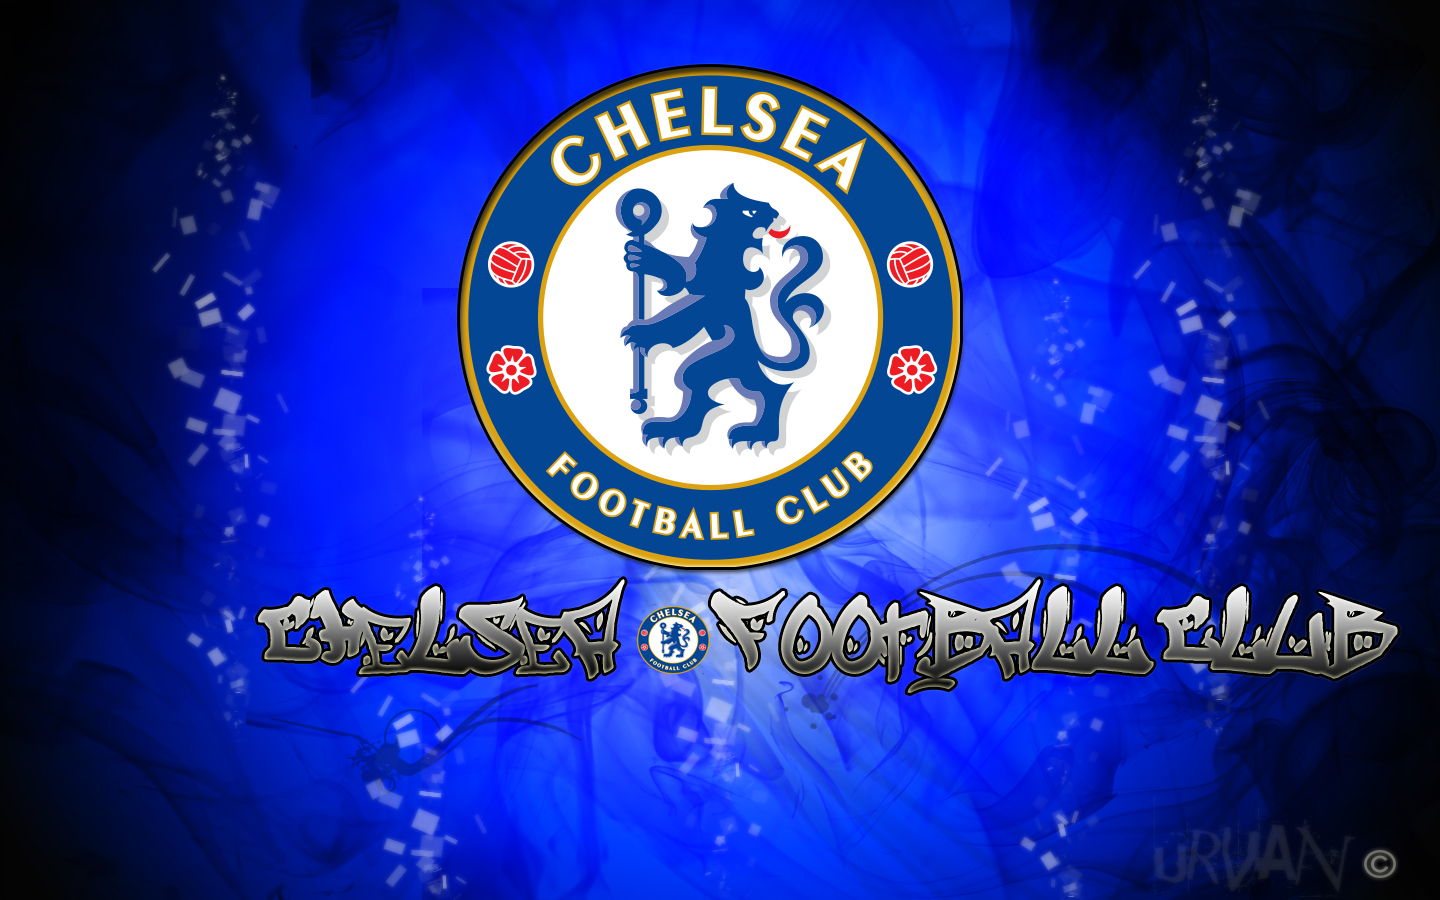 Chelsea FC Pictures And Videos: Chelsea FC Logo HD